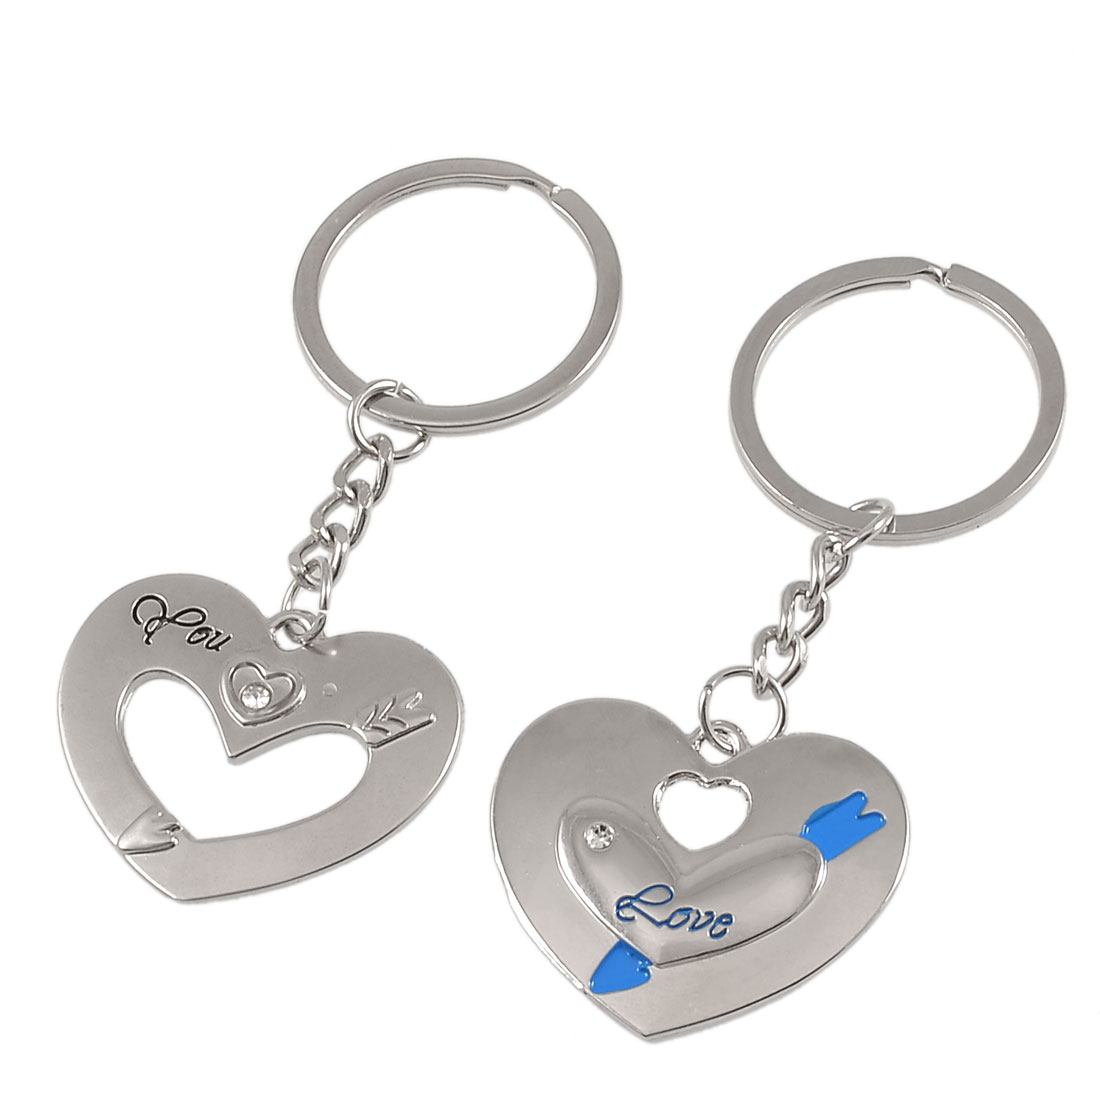 Pair Silver Tone Metal Heart Shapes Dangling Couples Keyring Key Holder